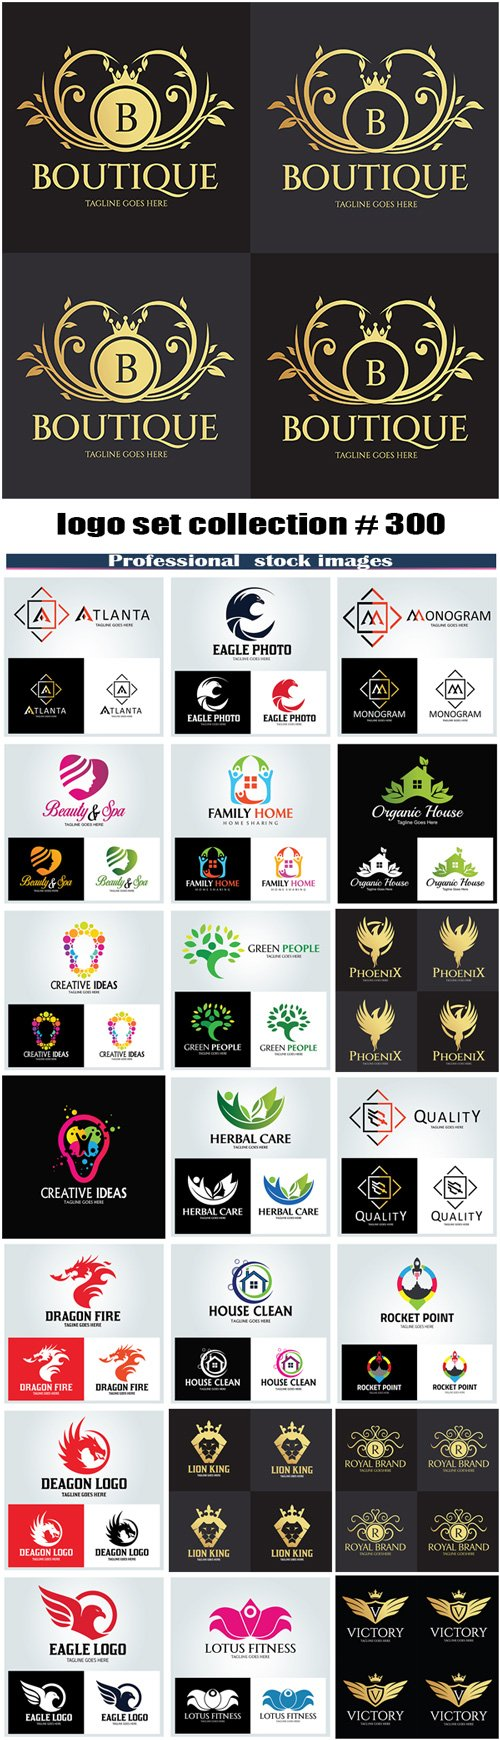 logo set collection # 300